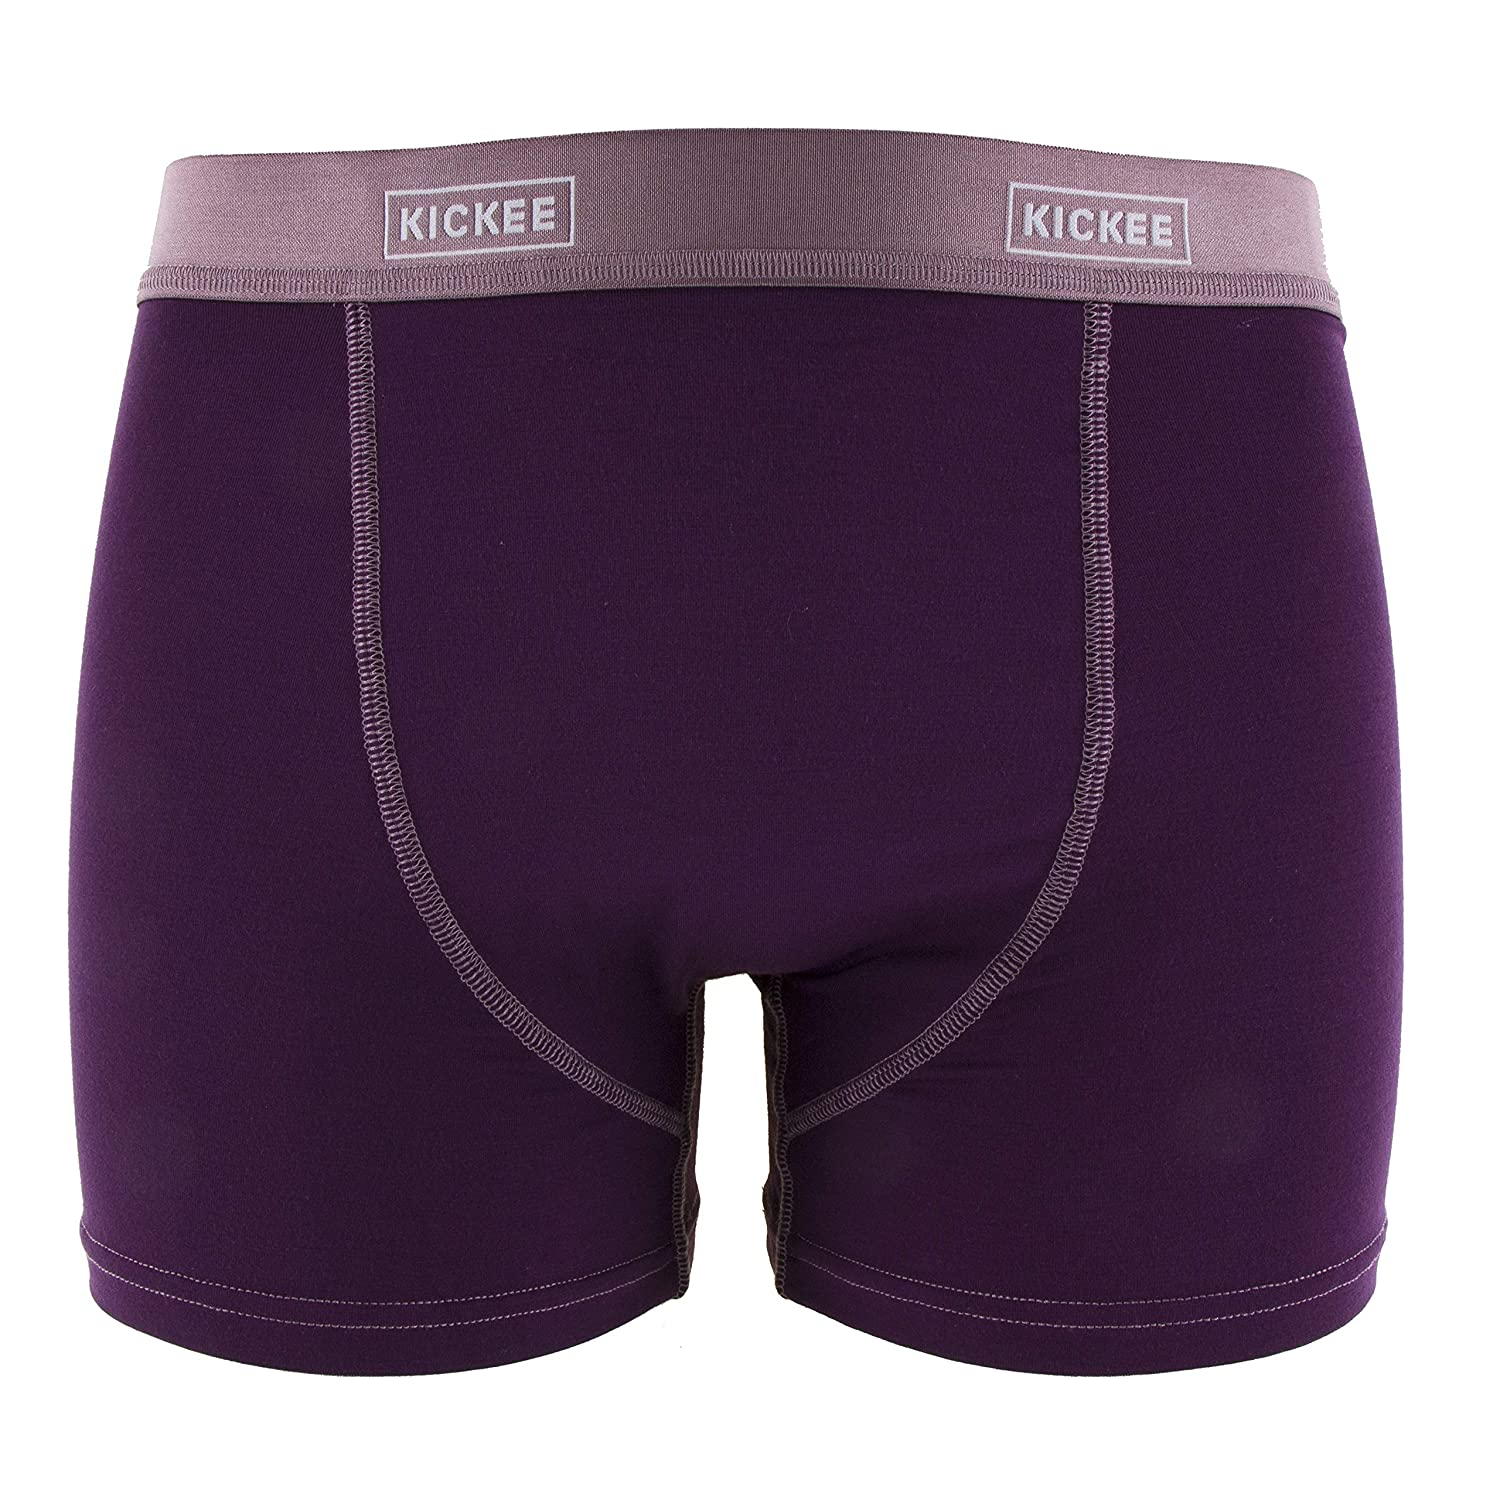 KICKEE Mens Solid Boxer Brief in Wine Grapes with Raisin S